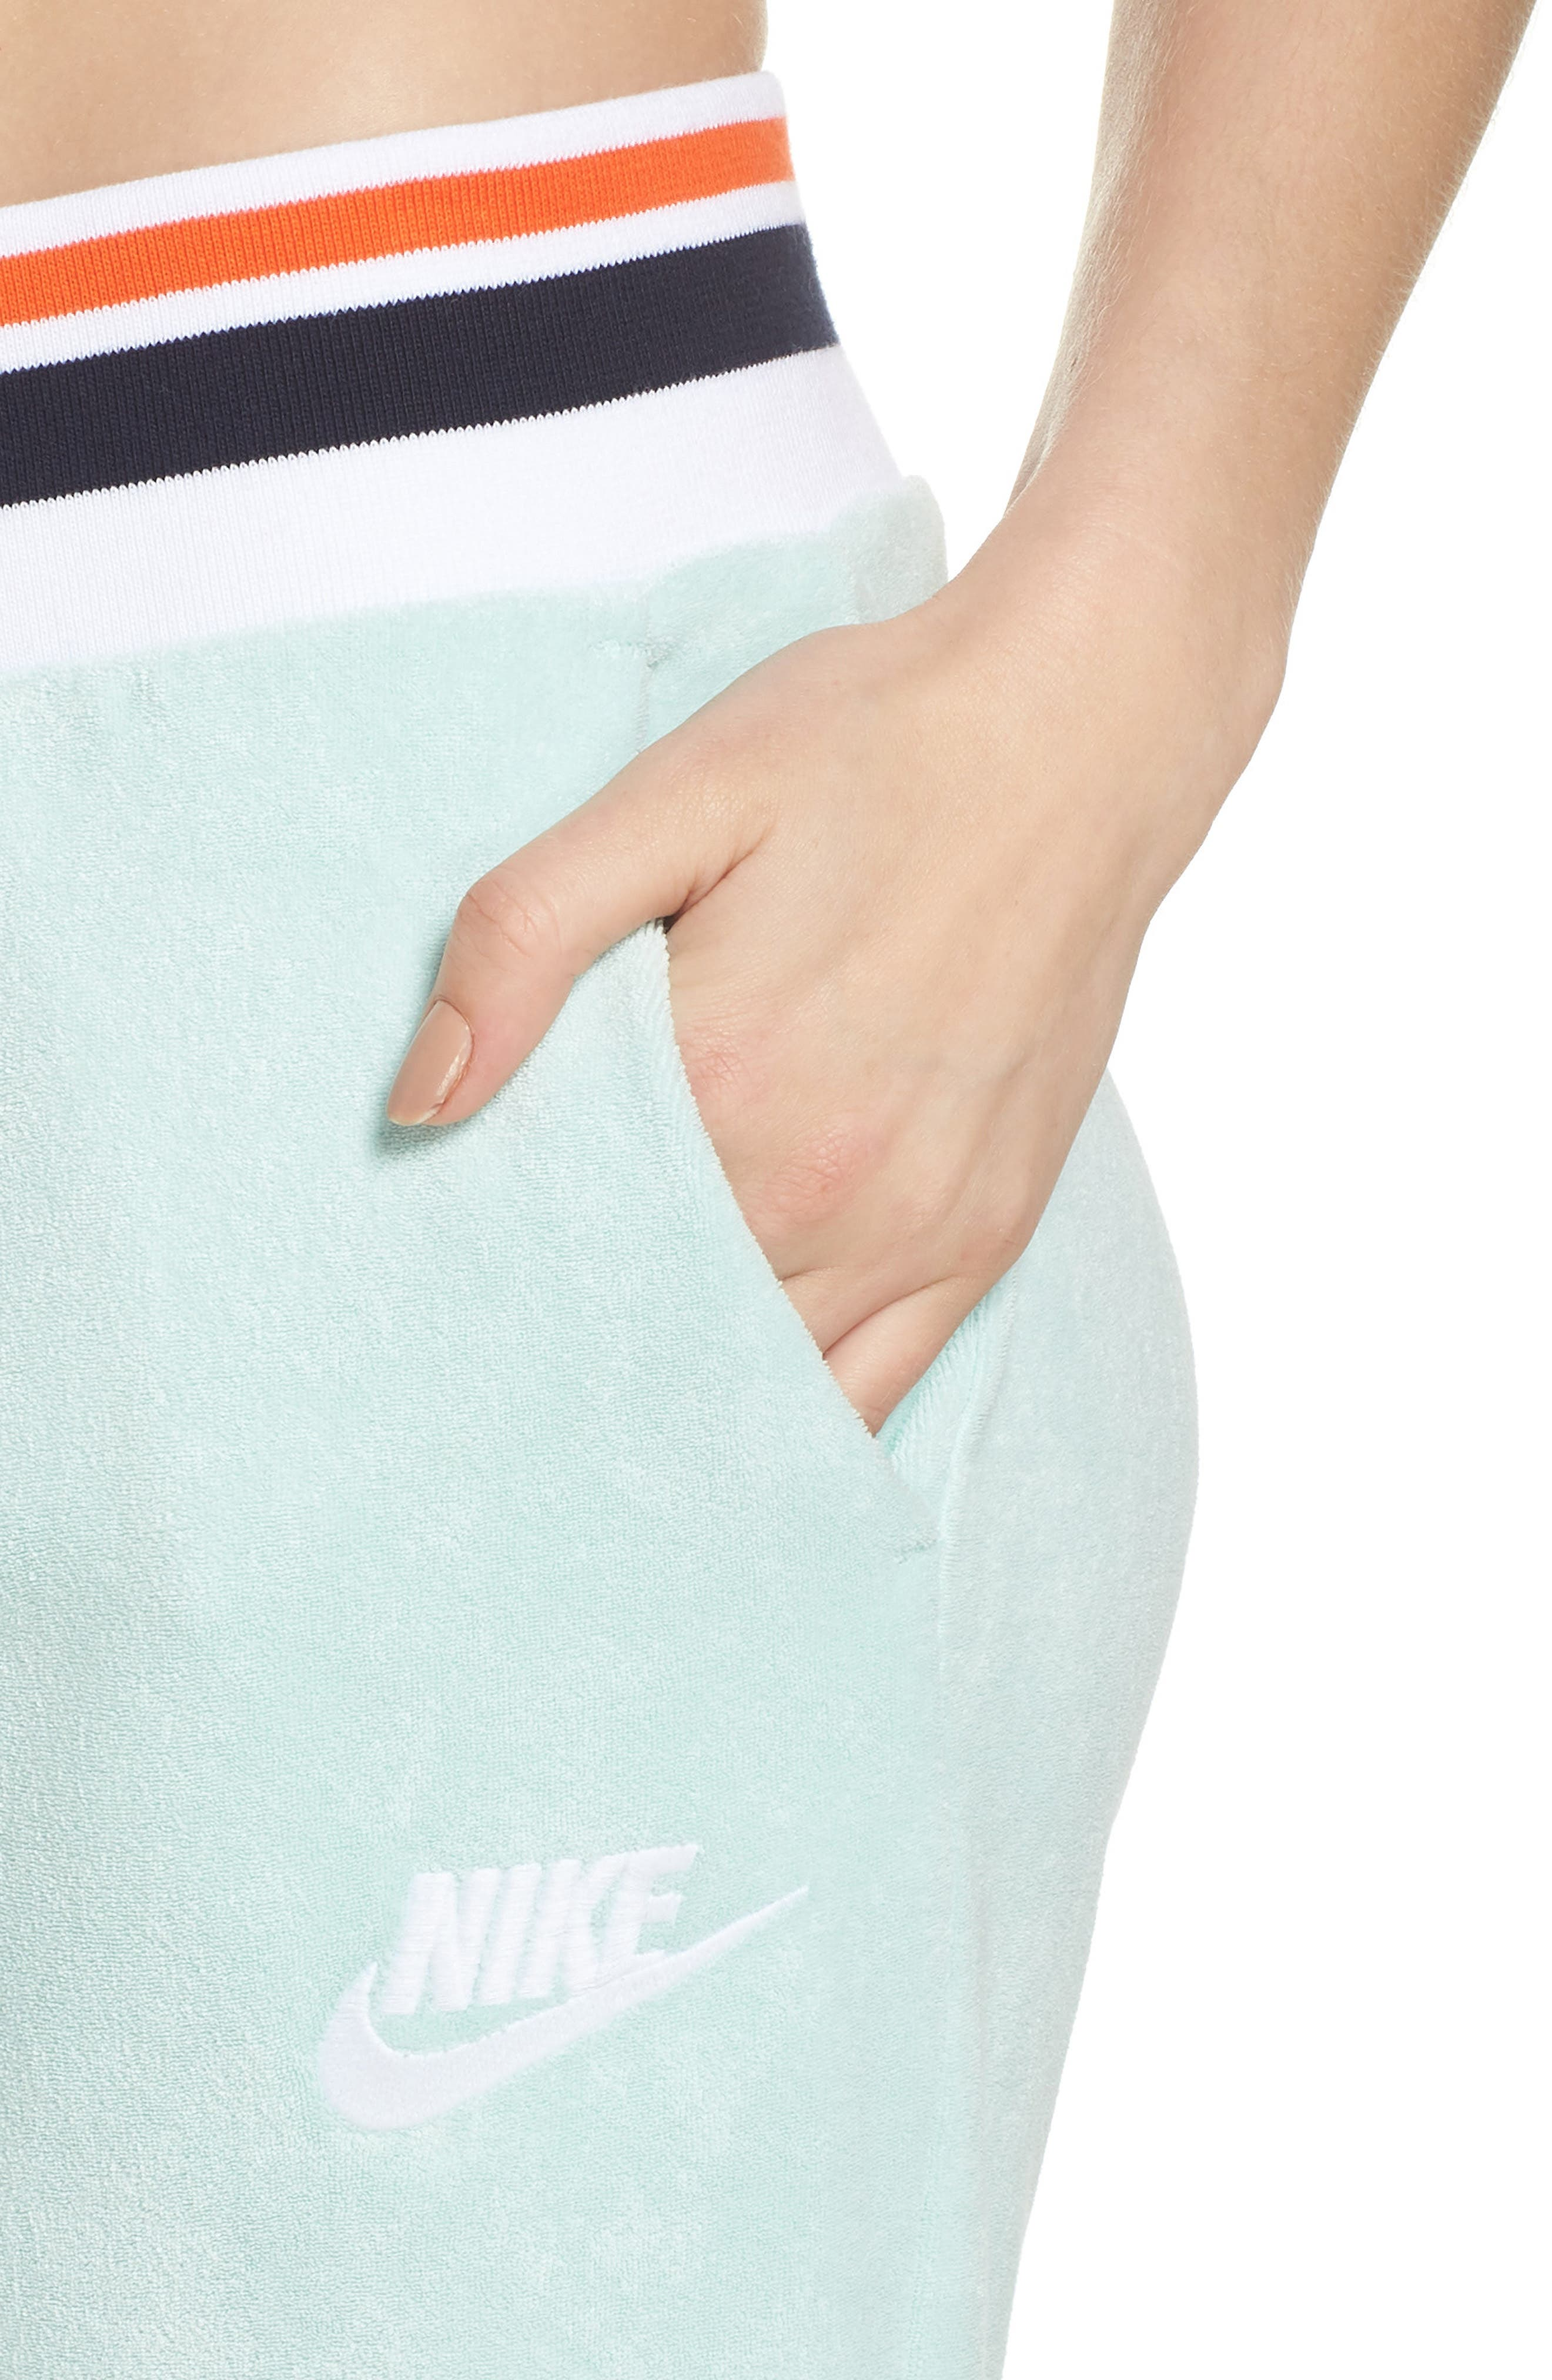 Sportswear French Terry Pants,                             Alternate thumbnail 4, color,                             Igloo/ White